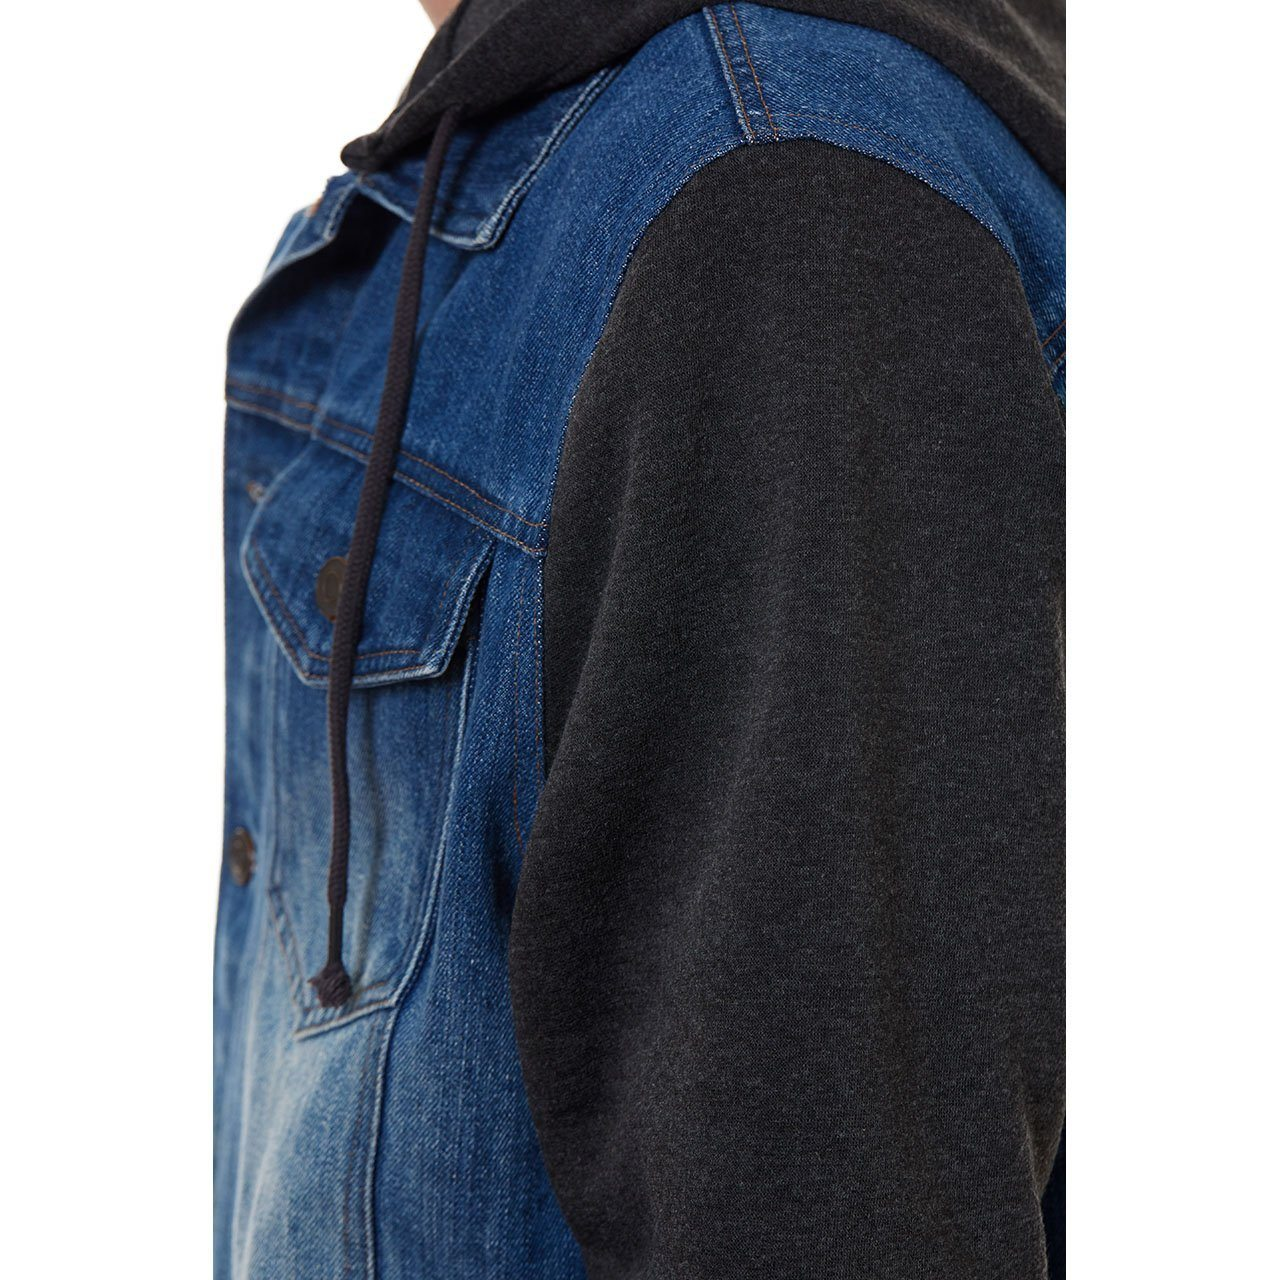 Denim Jackets - Quinn Denim Jacket